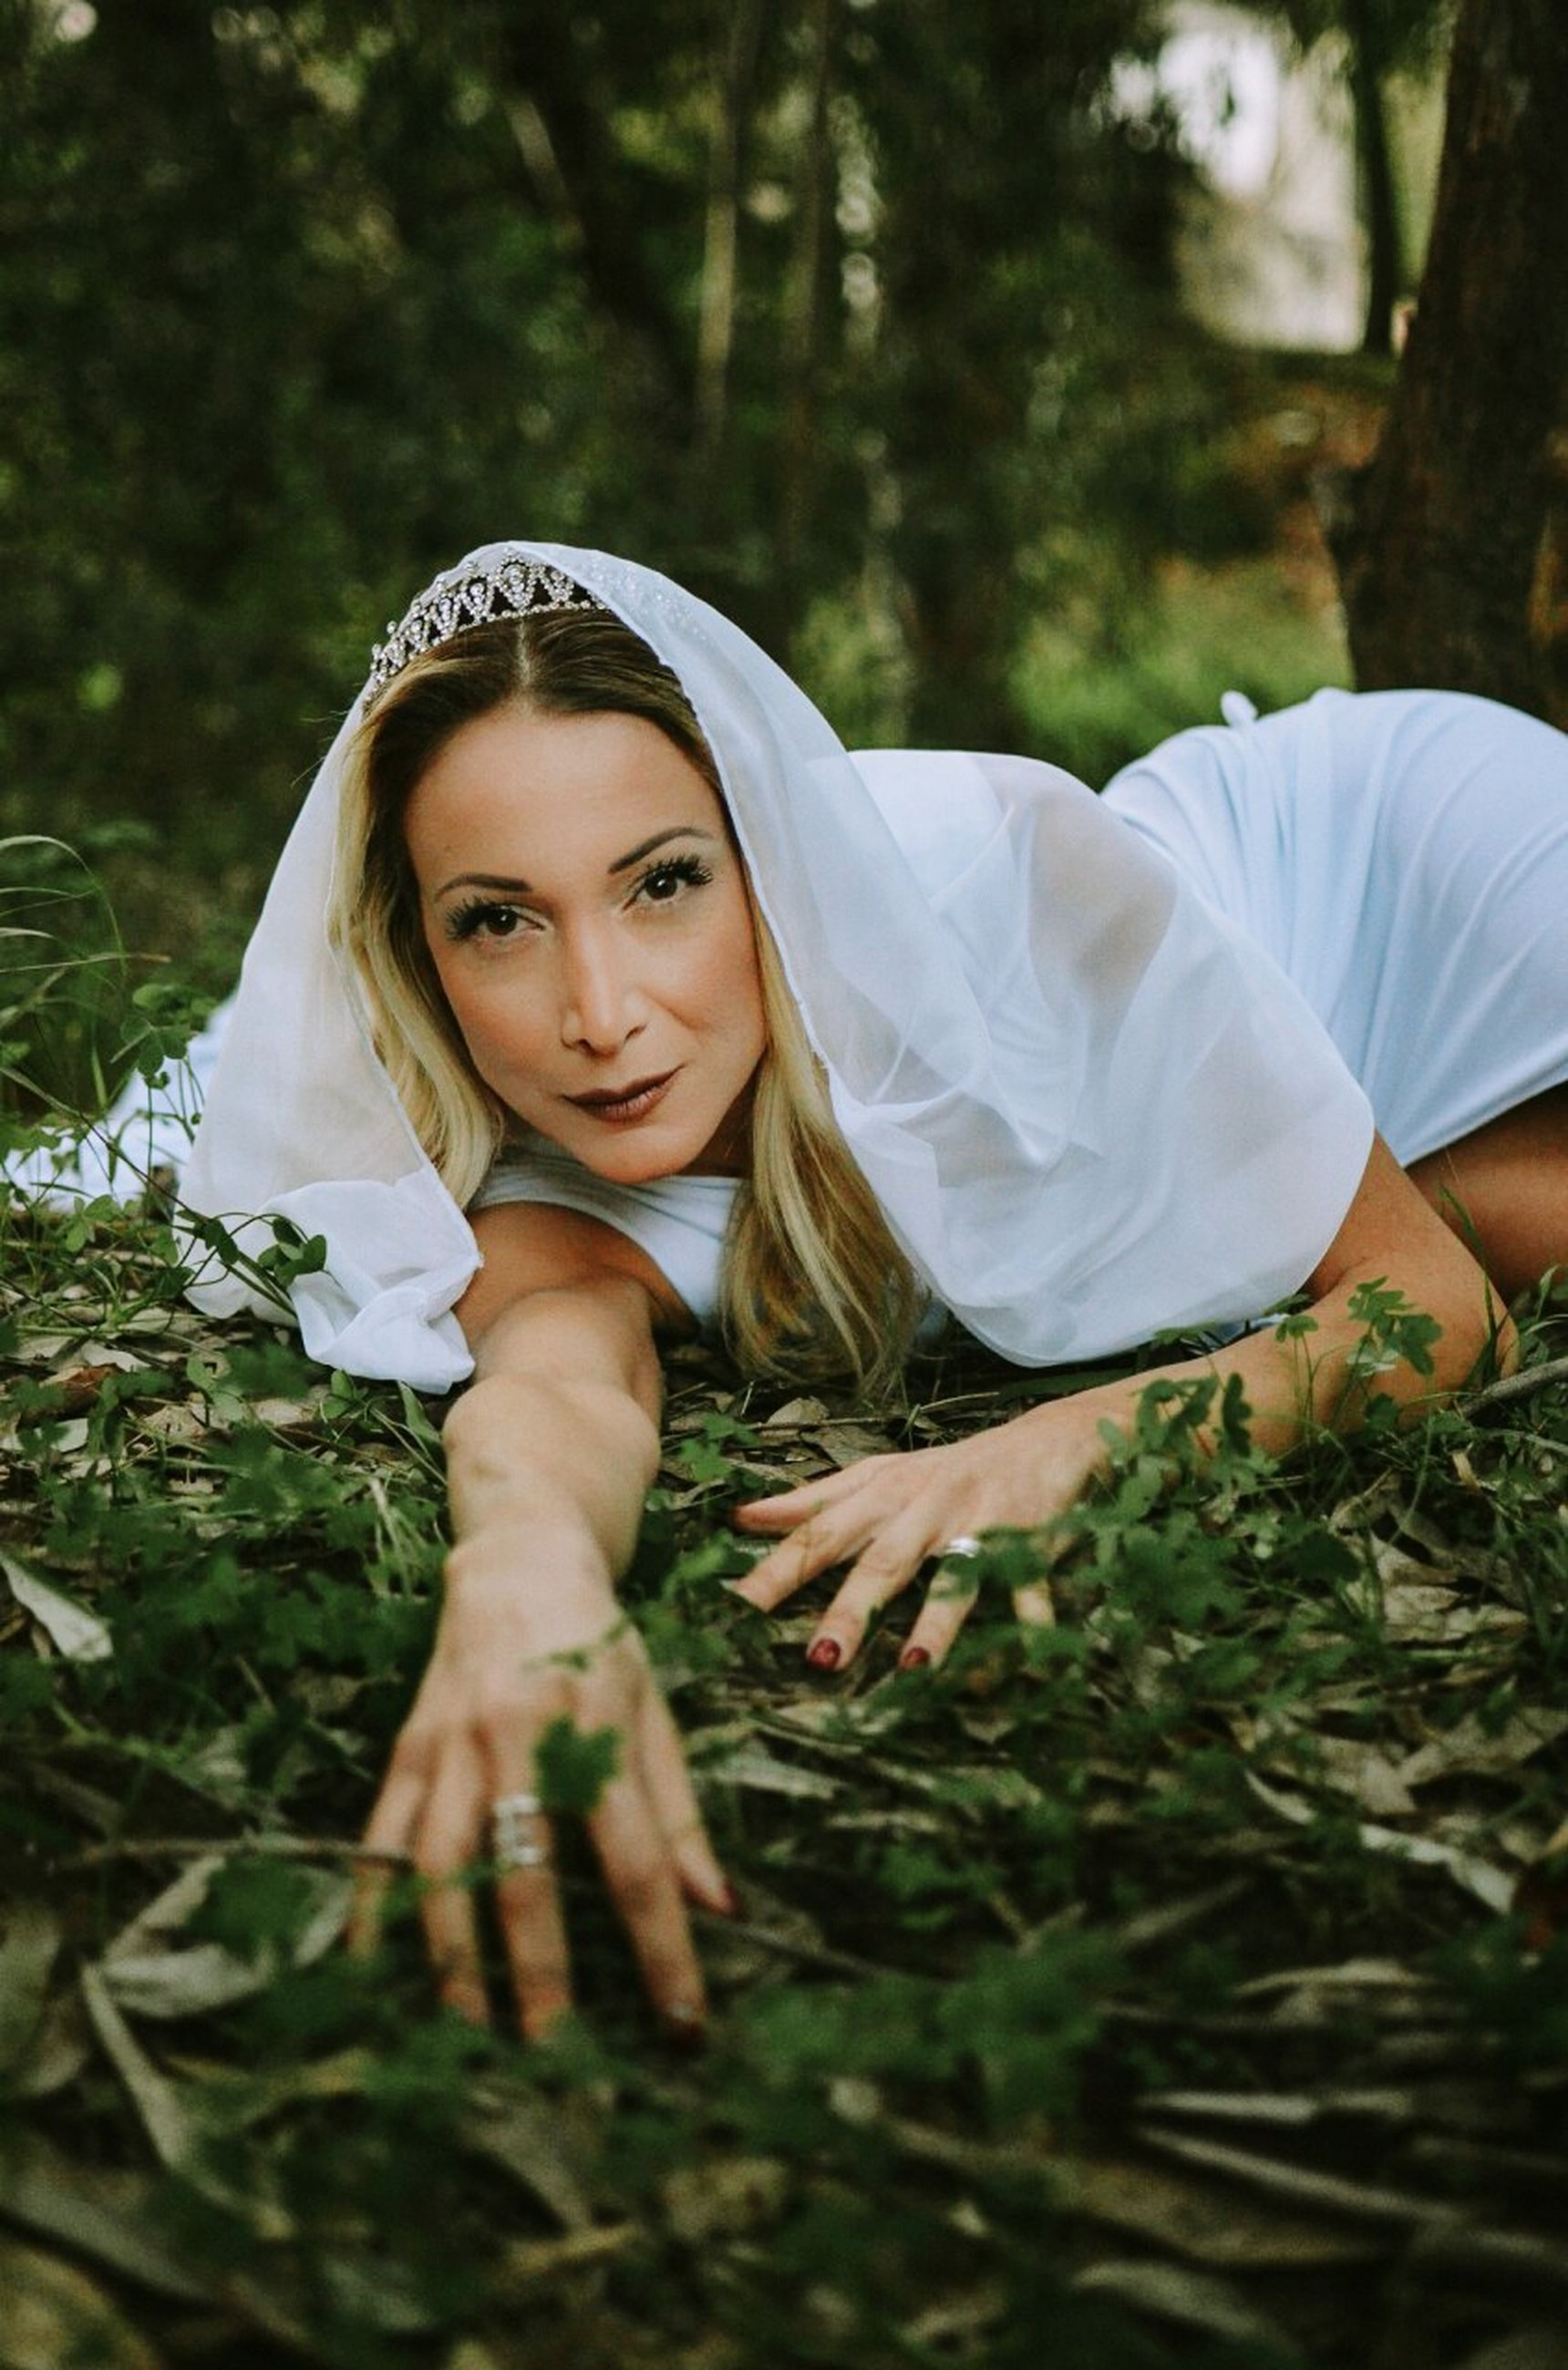 portrait, looking at camera, young adult, only women, one young woman only, one woman only, adults only, smiling, confidence, one person, young women, adult, lying down, people, ethereal, women, outdoors, happiness, beautiful woman, beauty, grass, day, nature